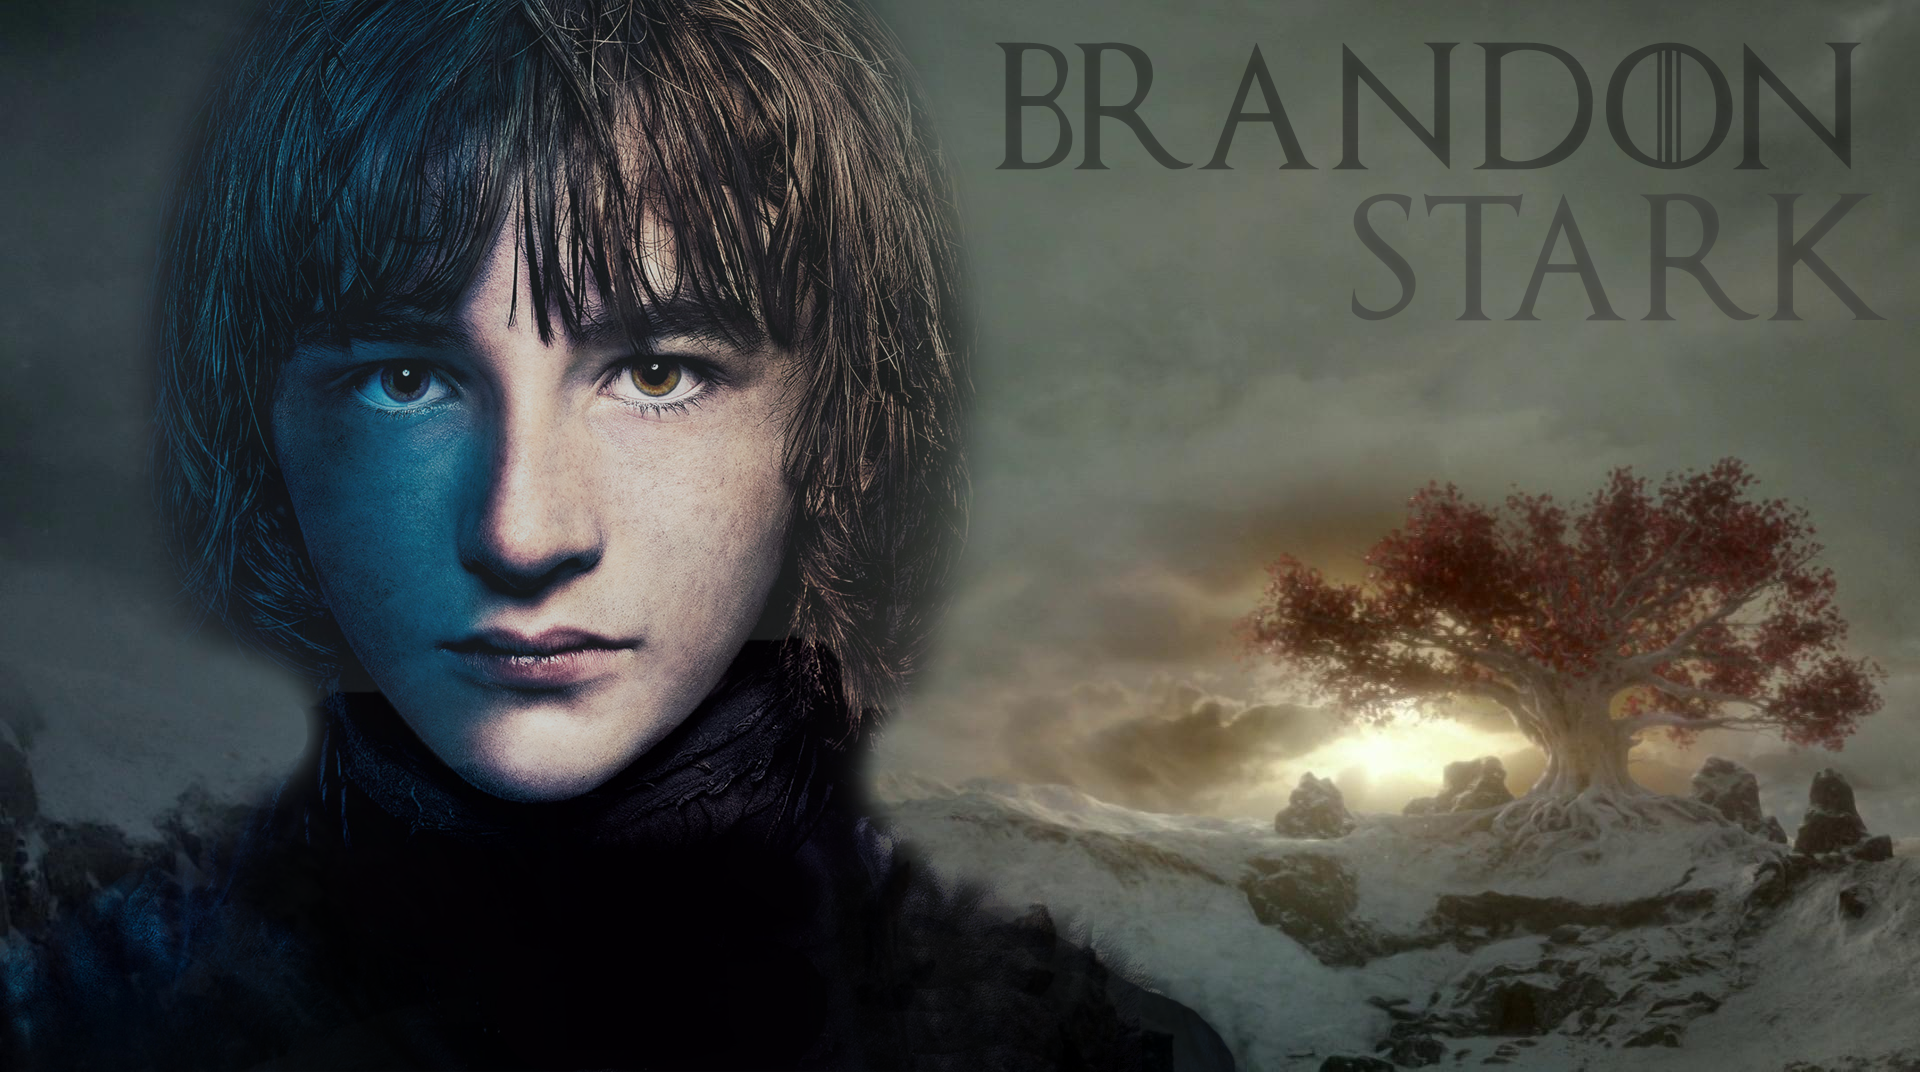 Game of thrones season 4 wallpapers wallpaper and background image tv show game of thrones bran stark isaac hempstead wright wallpaper voltagebd Images